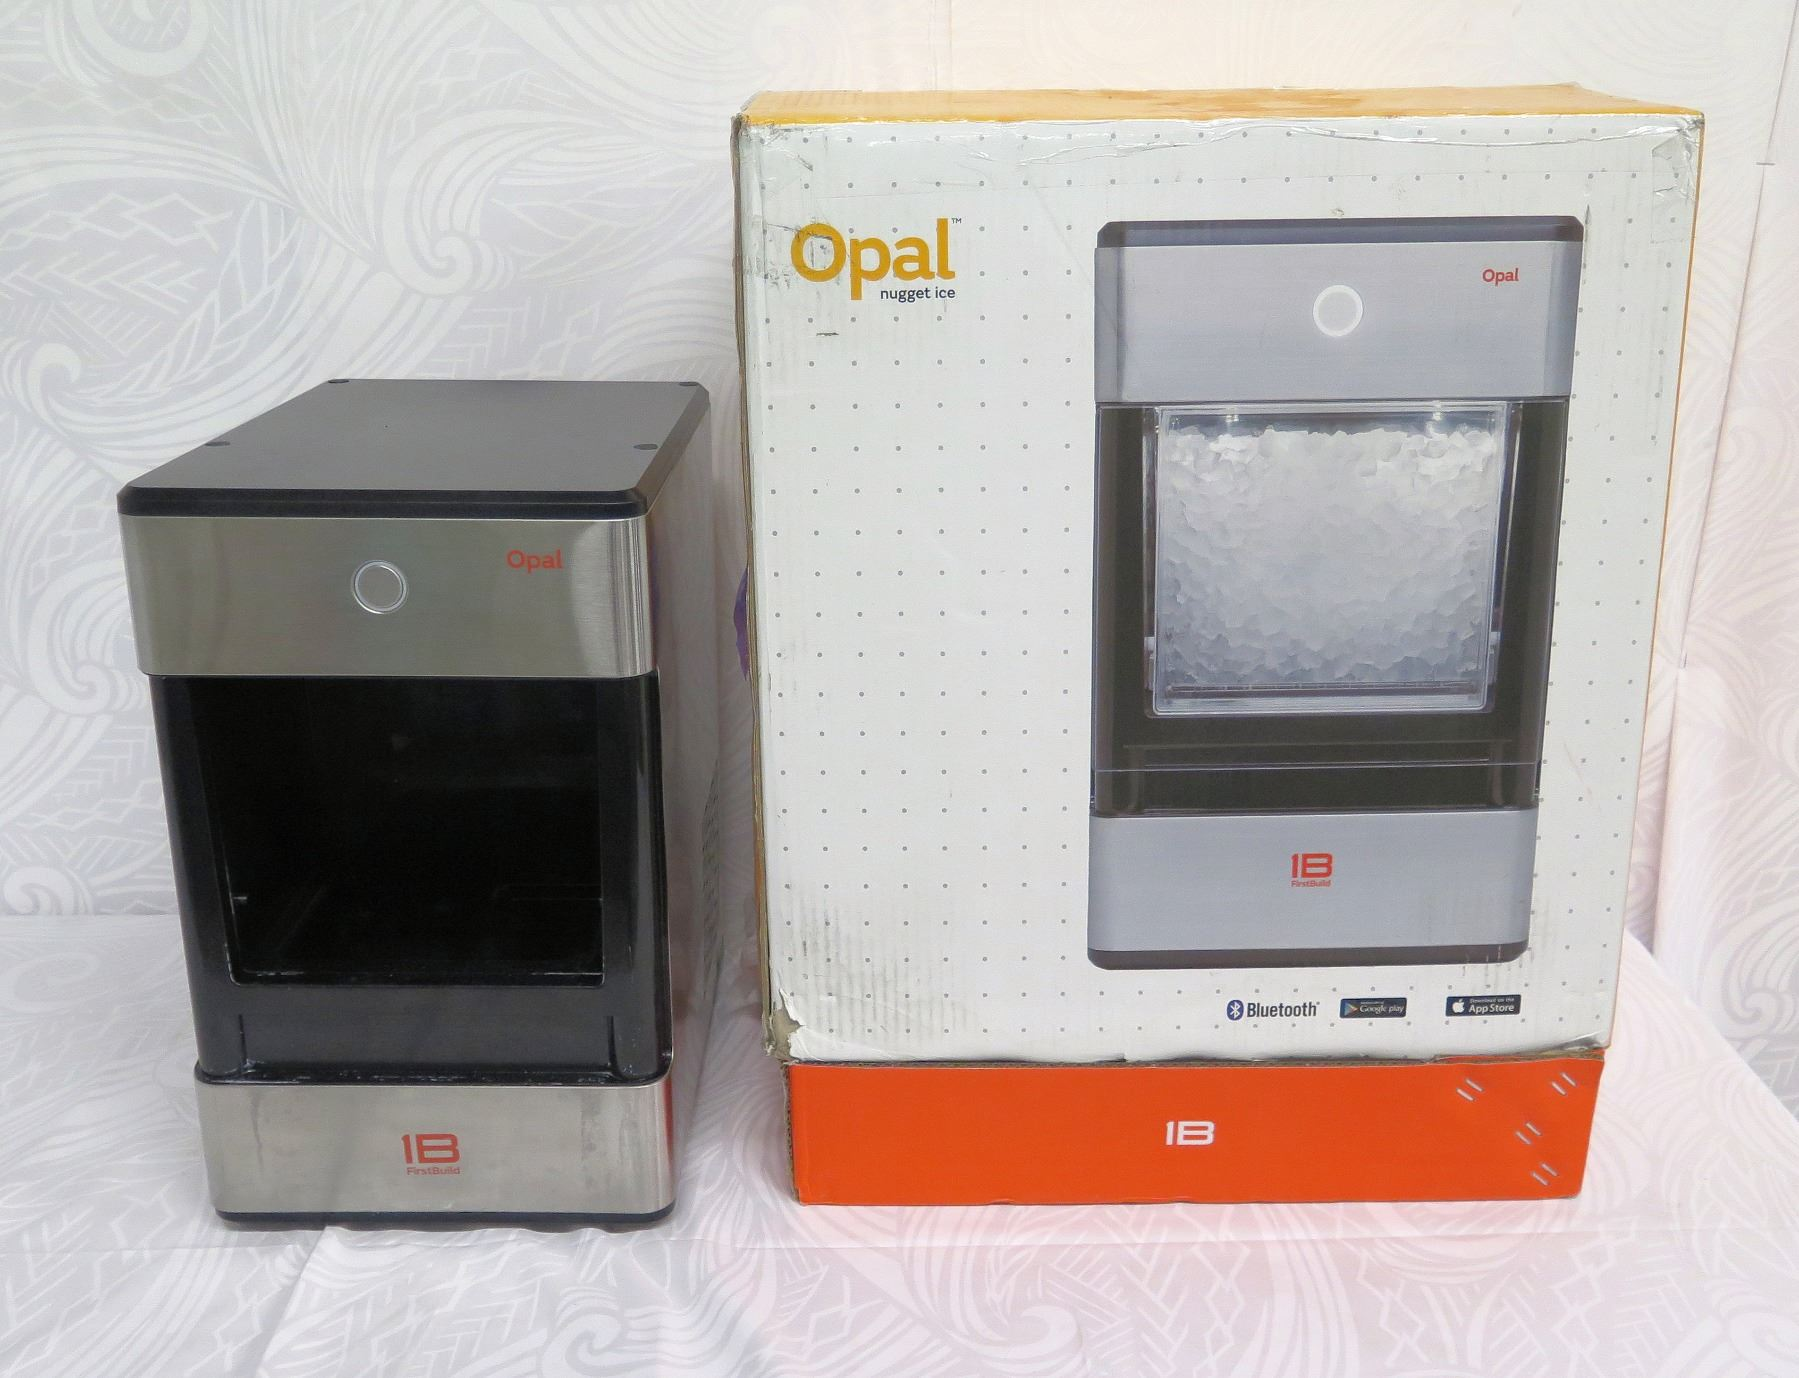 Ge Profile Opal Nugget Bluetooth Ice Maker Ib Firstbuild Missing Ice Tray Oahu Auctions